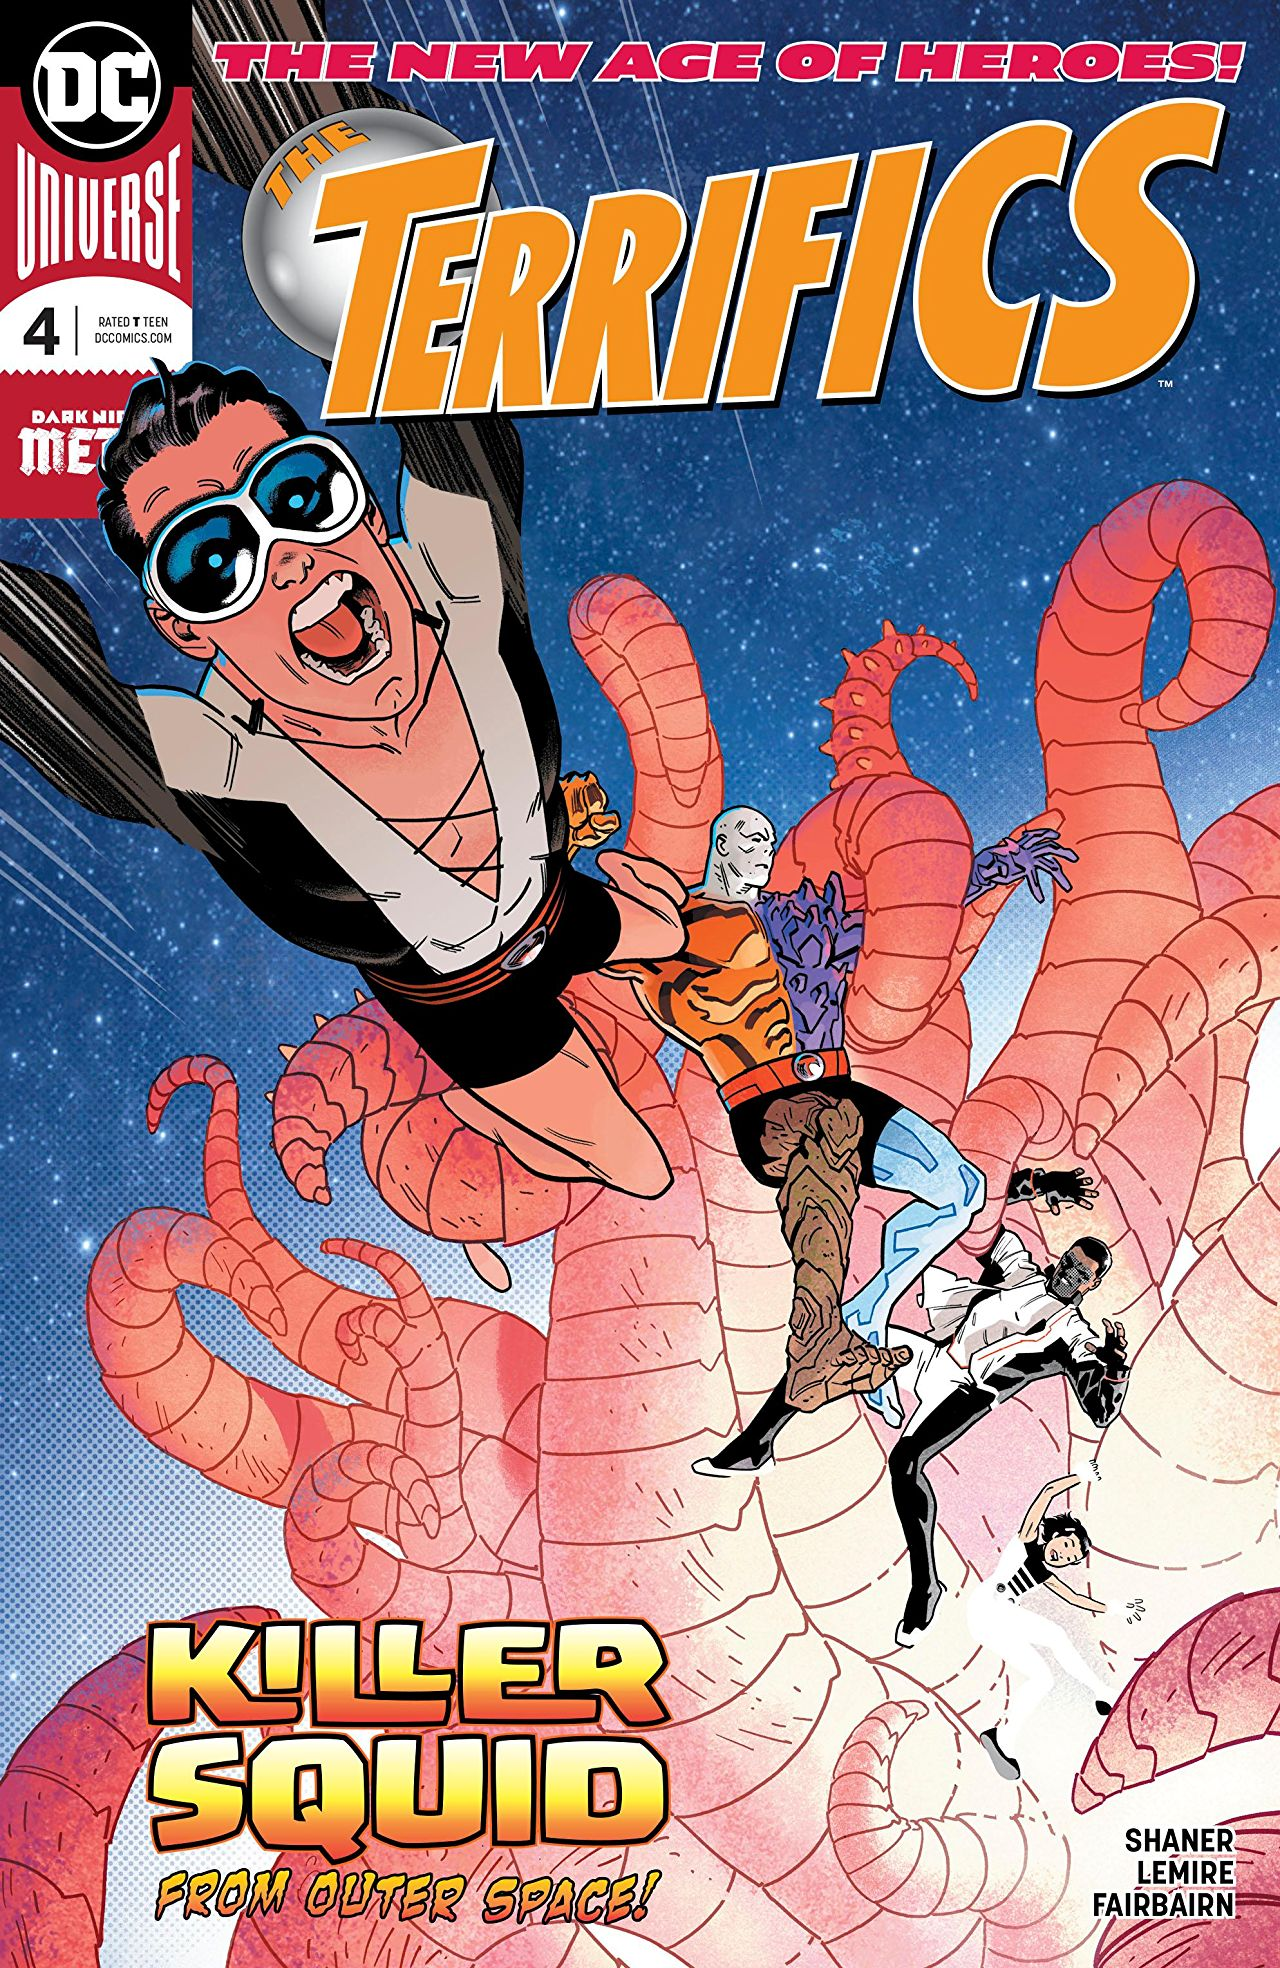 The Terrifics #4 review: Doc Shaner makes an absolutely amazing series debut